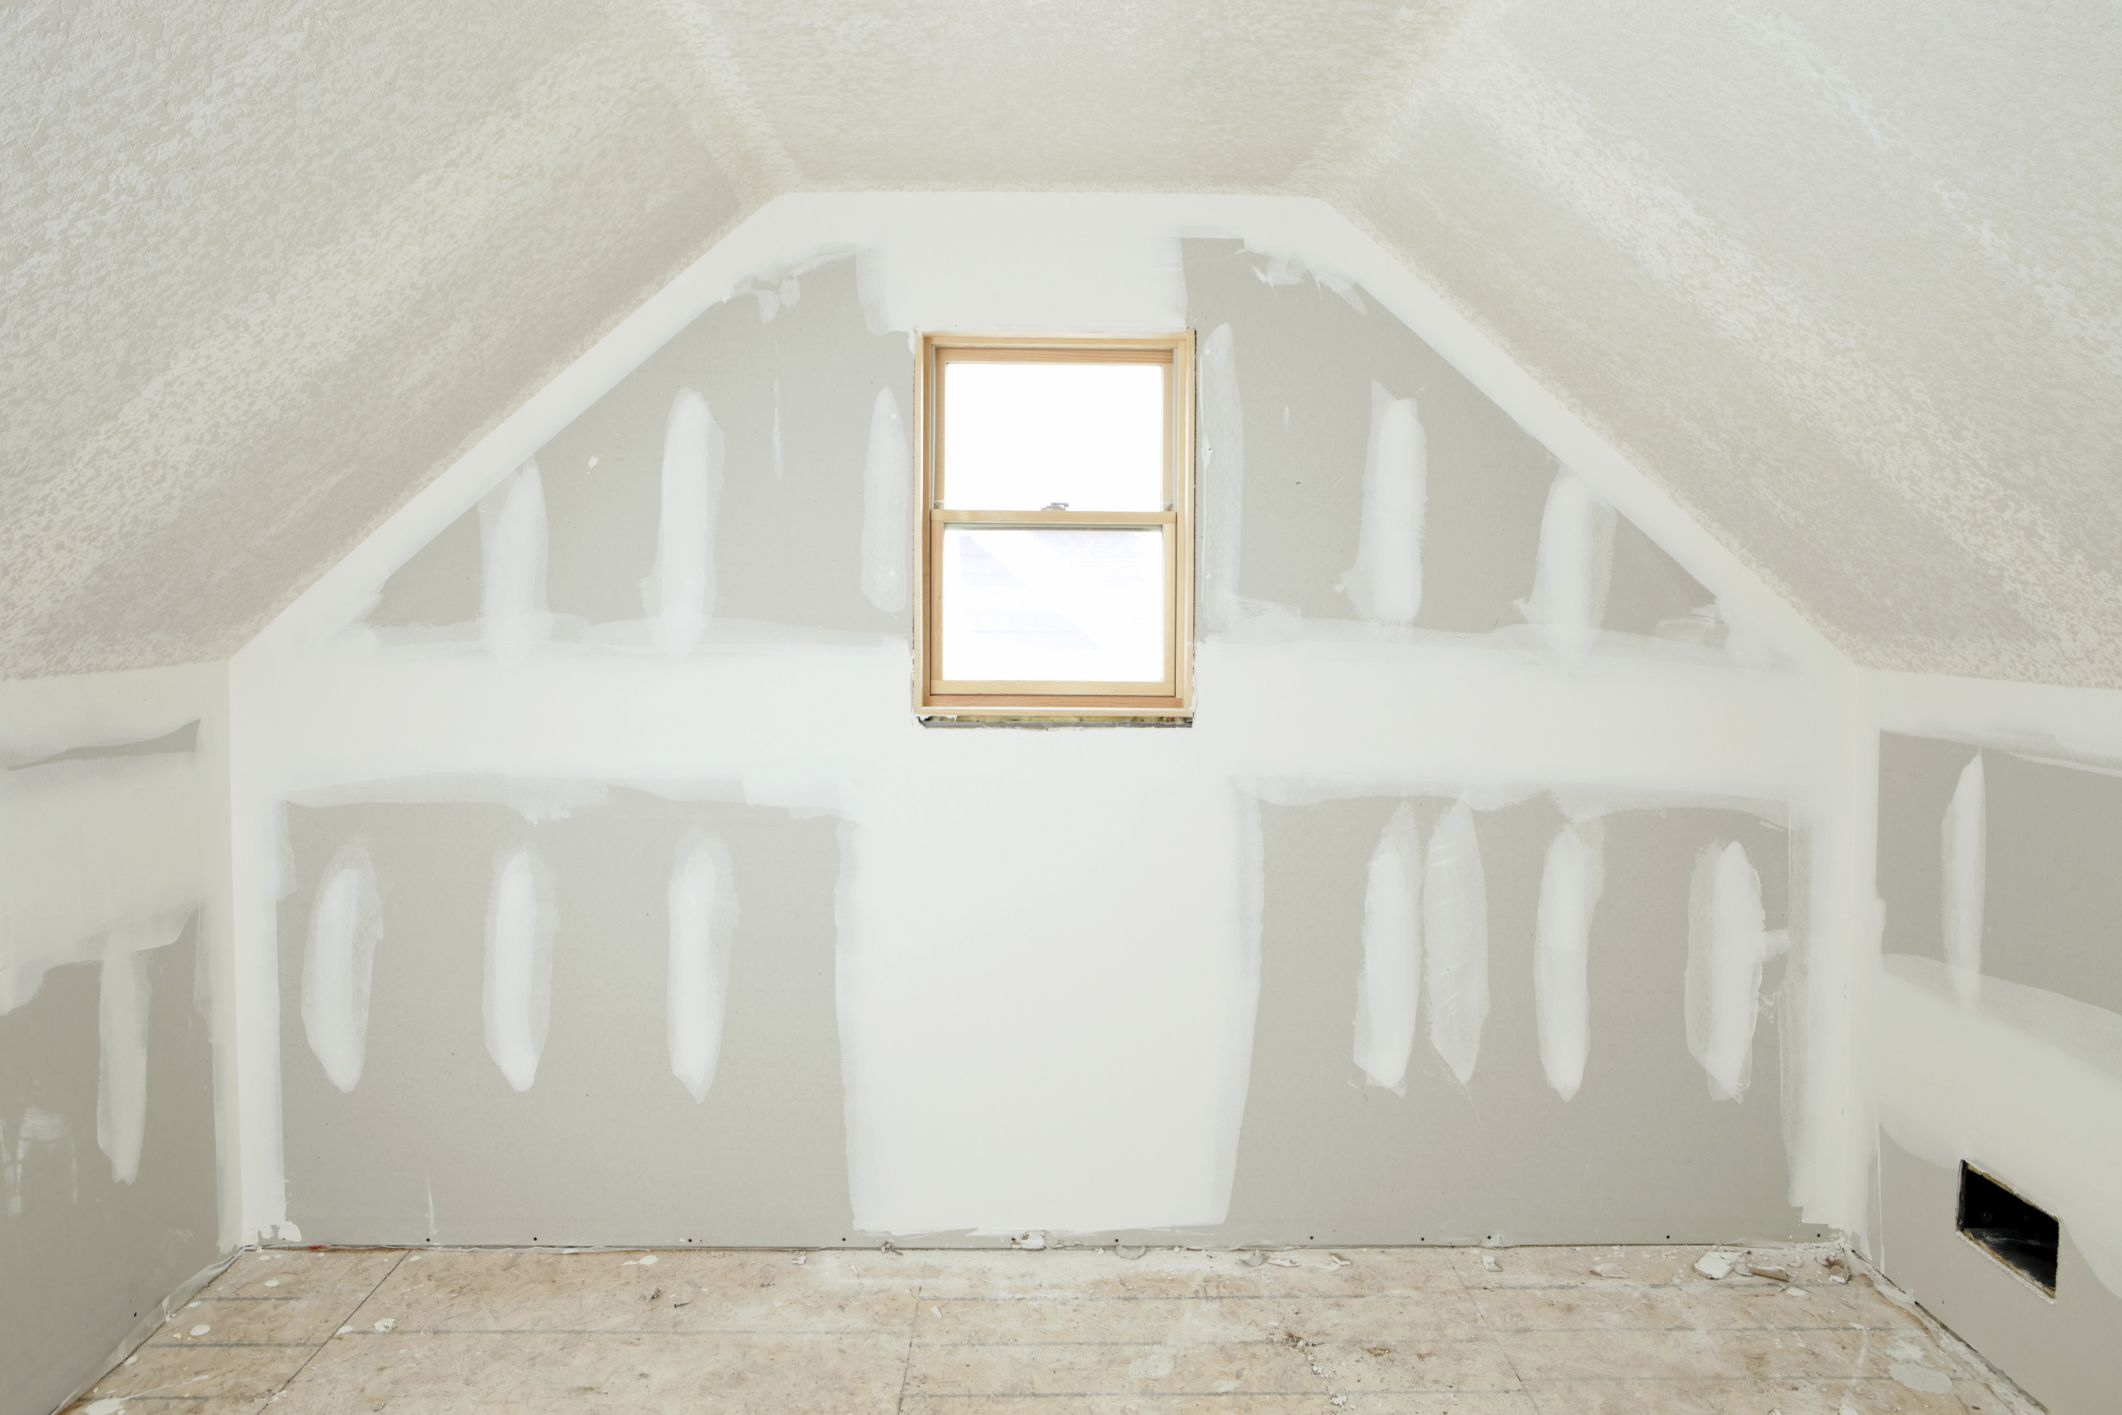 Wet Sanding Drywall Mud Instructions